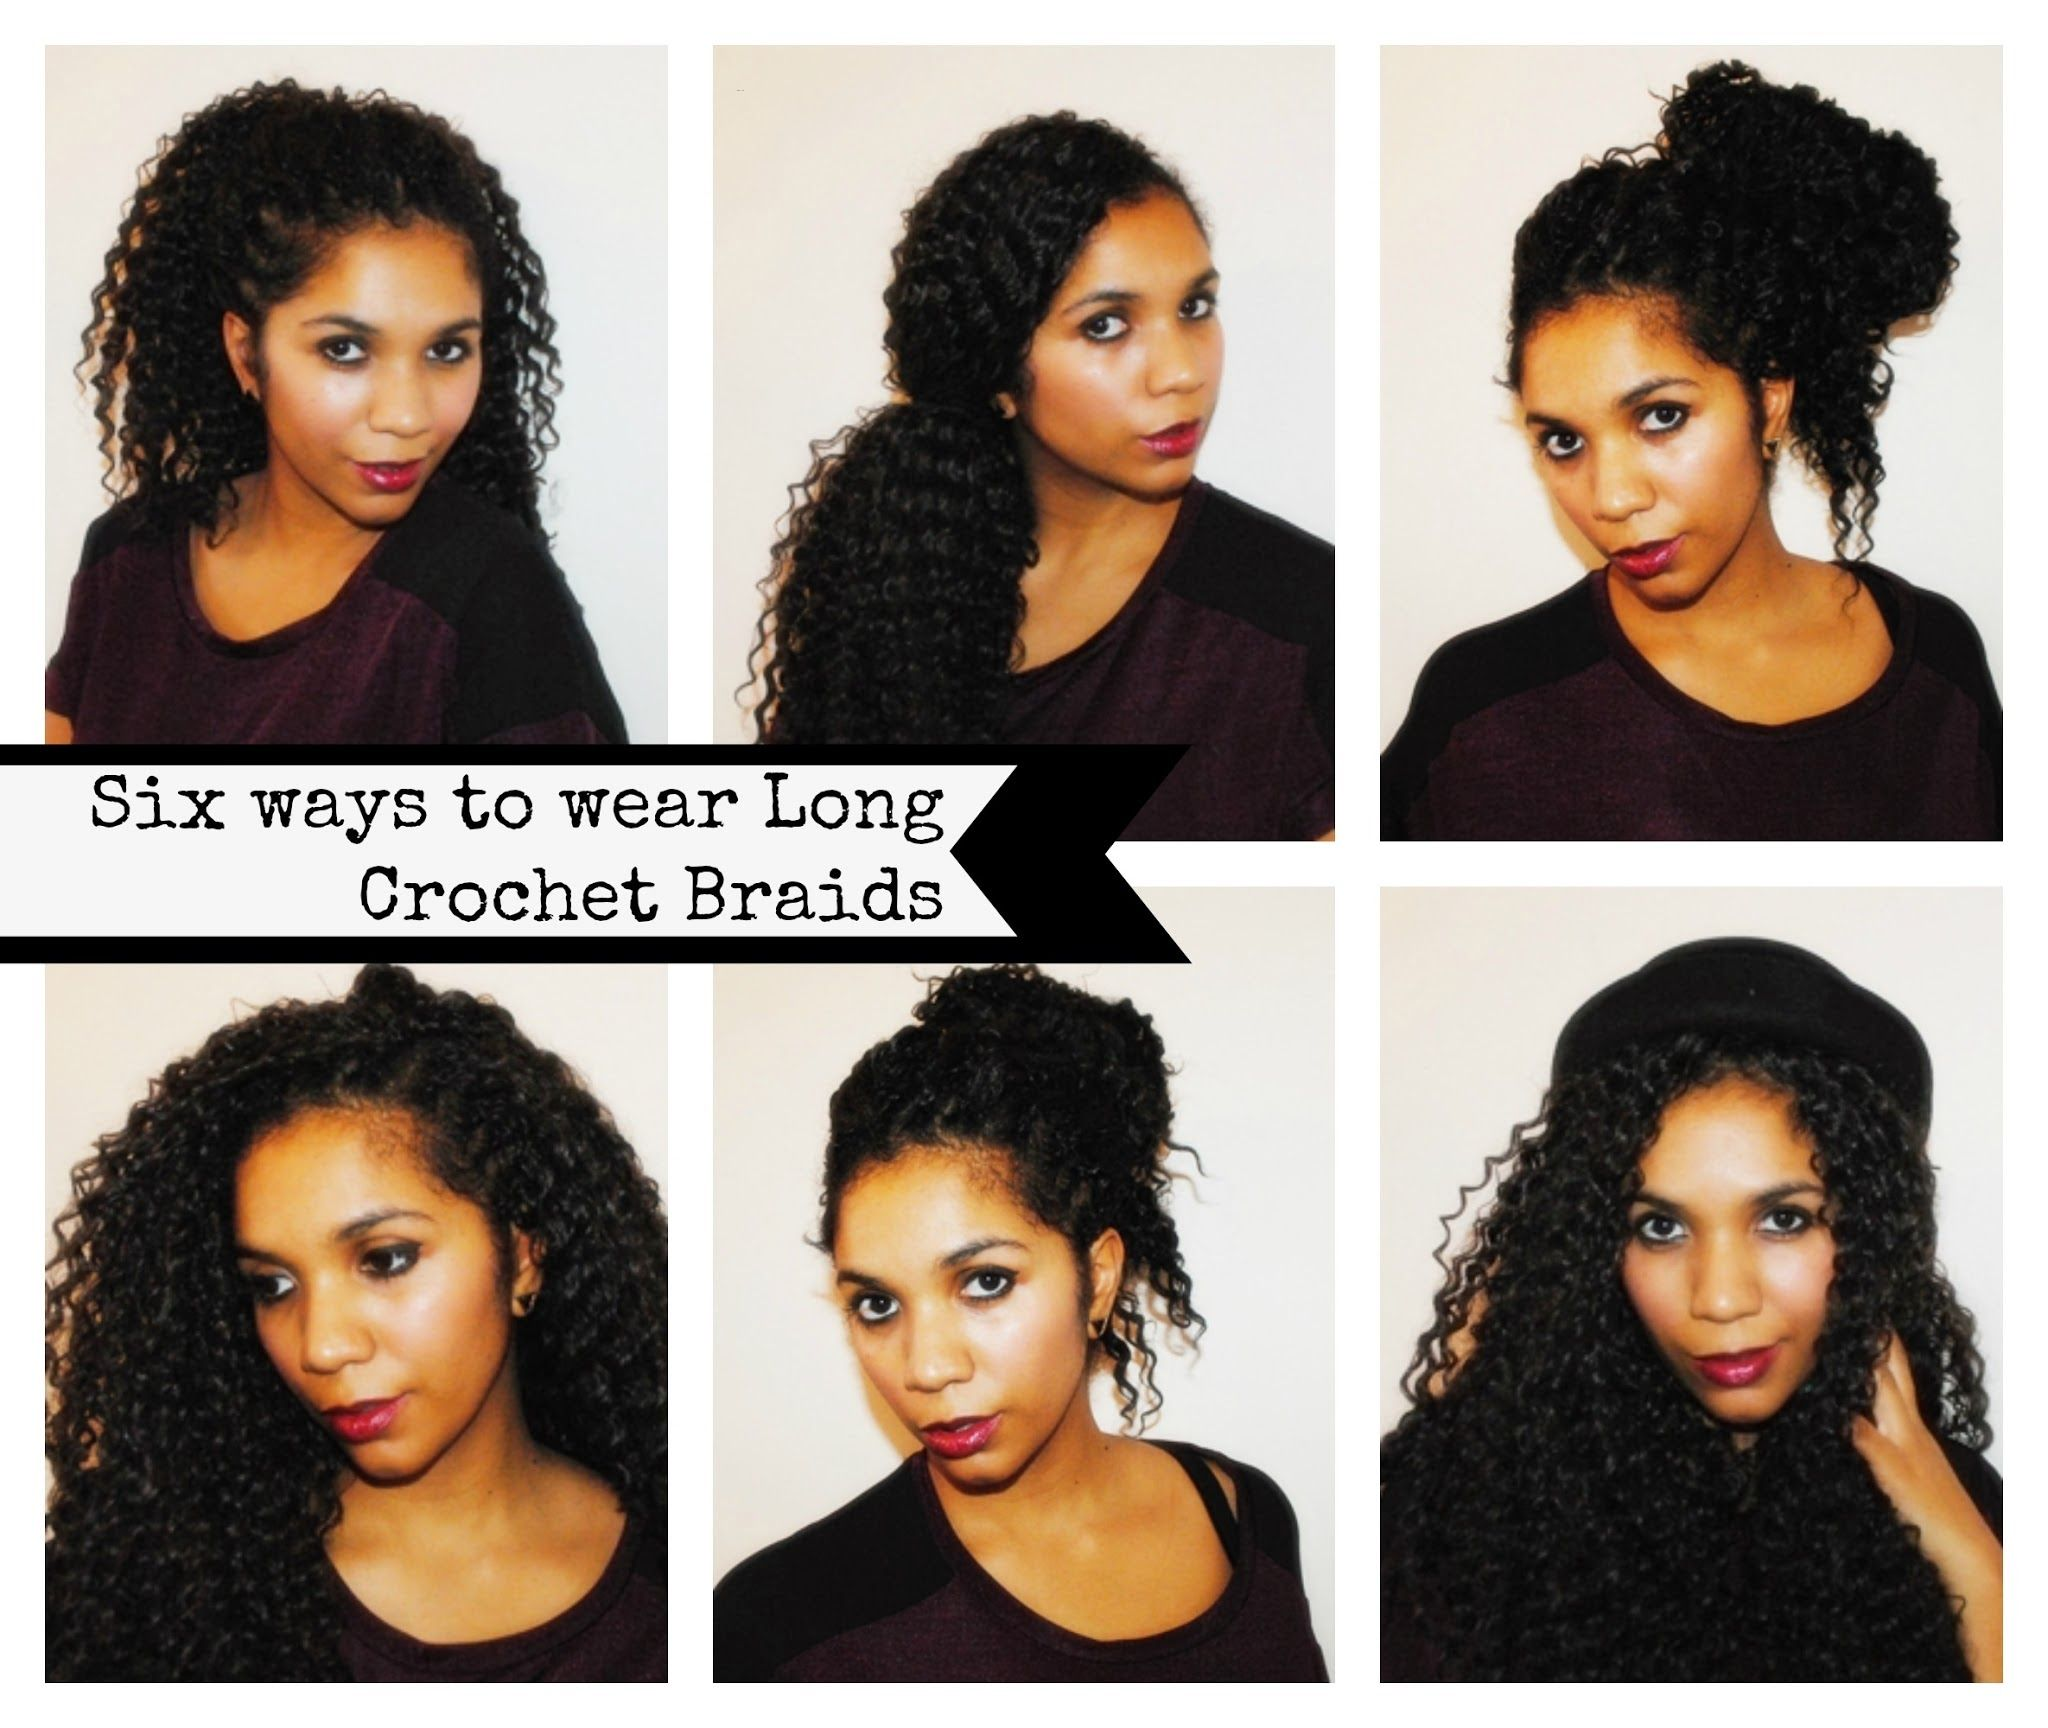 Little Likely Lads 6 Styles To Wear Long Crochet Braids Natural Hair Styles Long Crochet Braids Hair Styles